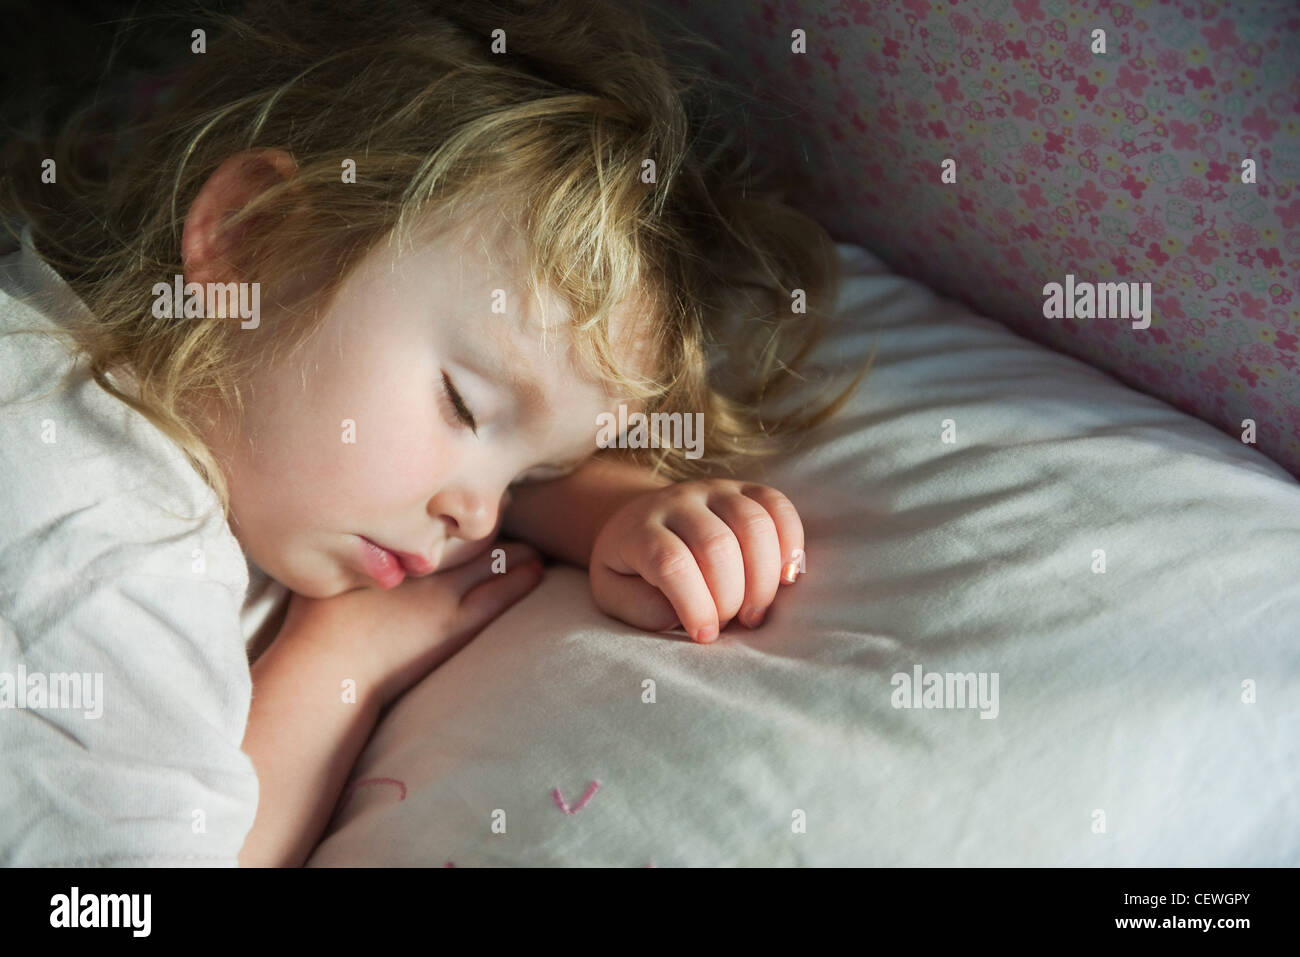 Toddler napping - Stock Image